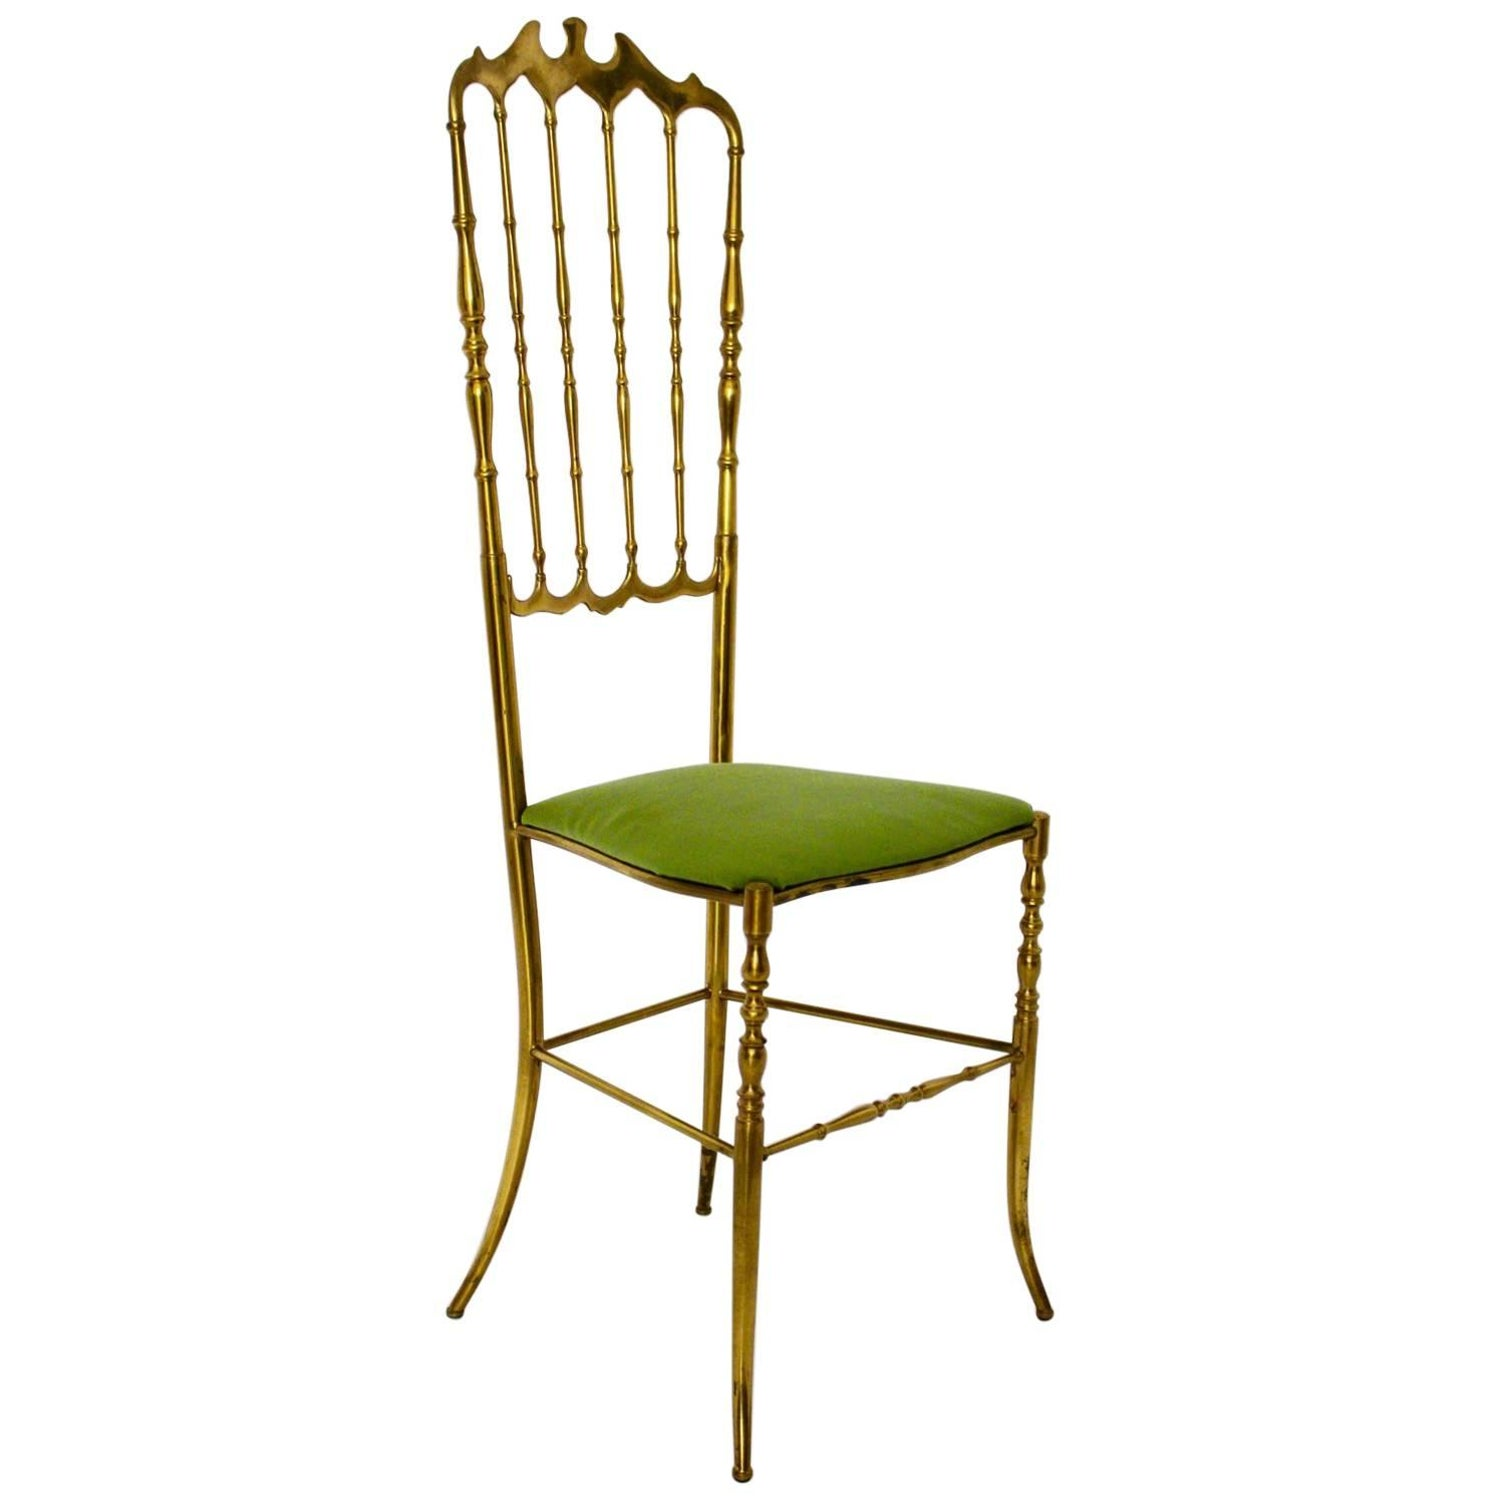 Brass Chiavari Chair 1950s Italy For Sale at 1stdibs